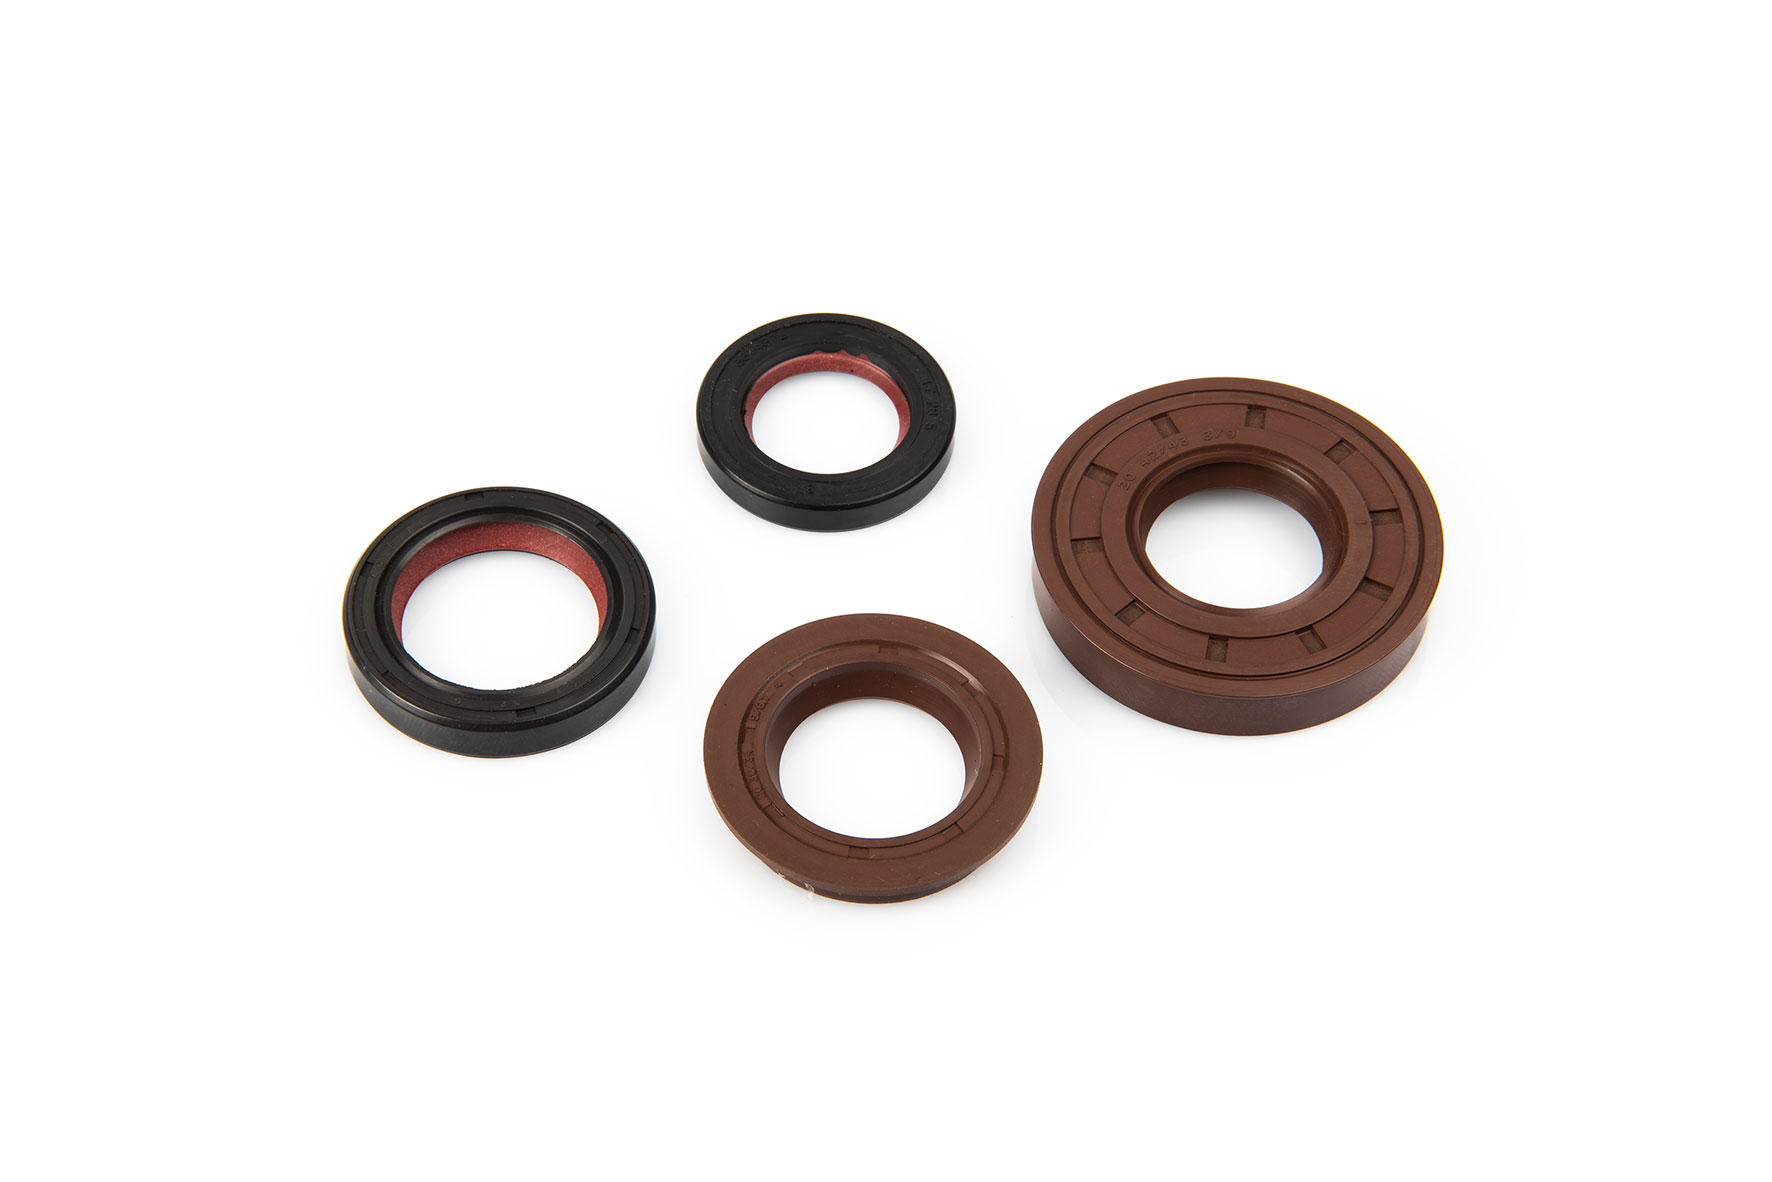 OIL-SEAL SET FKM/PTFE for OVERHAUL MINAR./YAMA.scooter/QUAD 50 2T